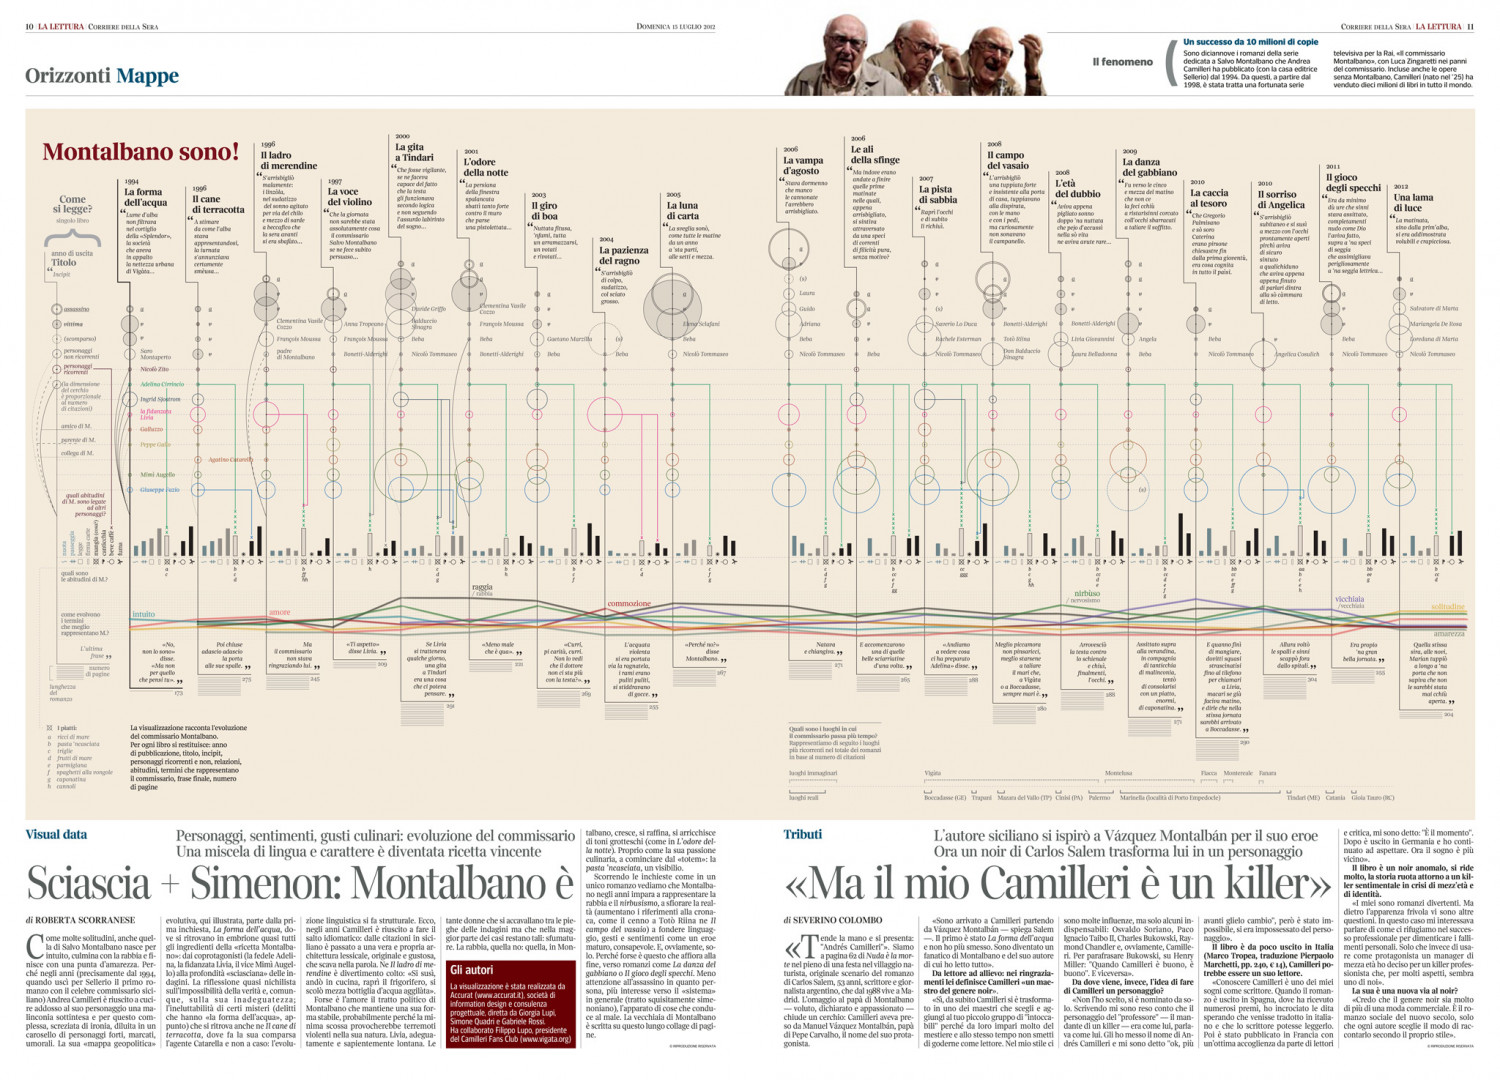 The Real Montalbano Infographic